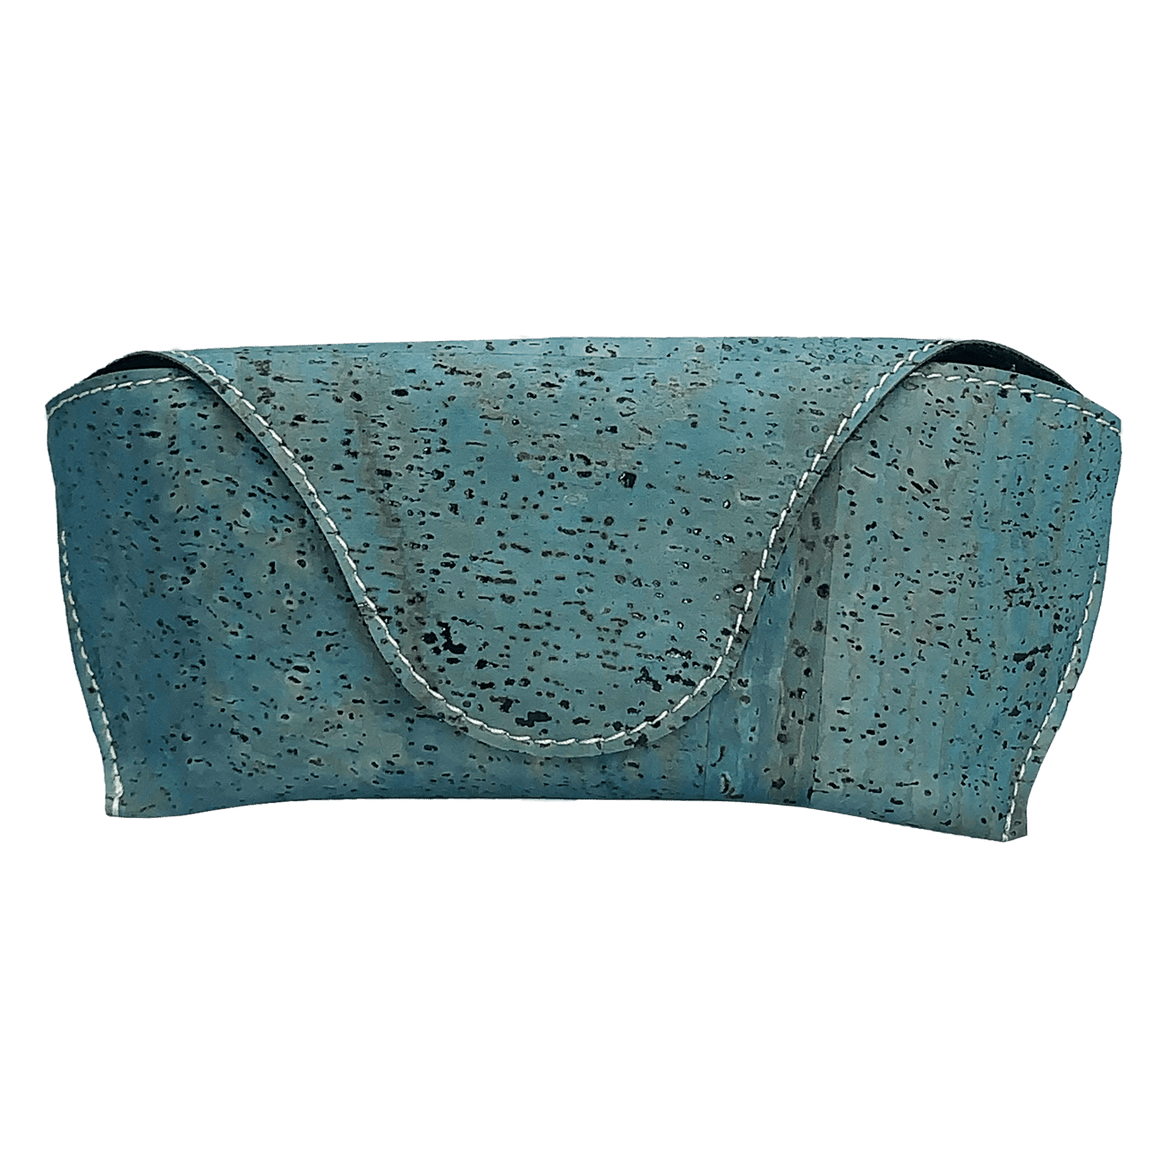 Cork Glasses Case - Naturally Anti-Microbial Hypoallergenic Sustainable Eco-Friendly Cork